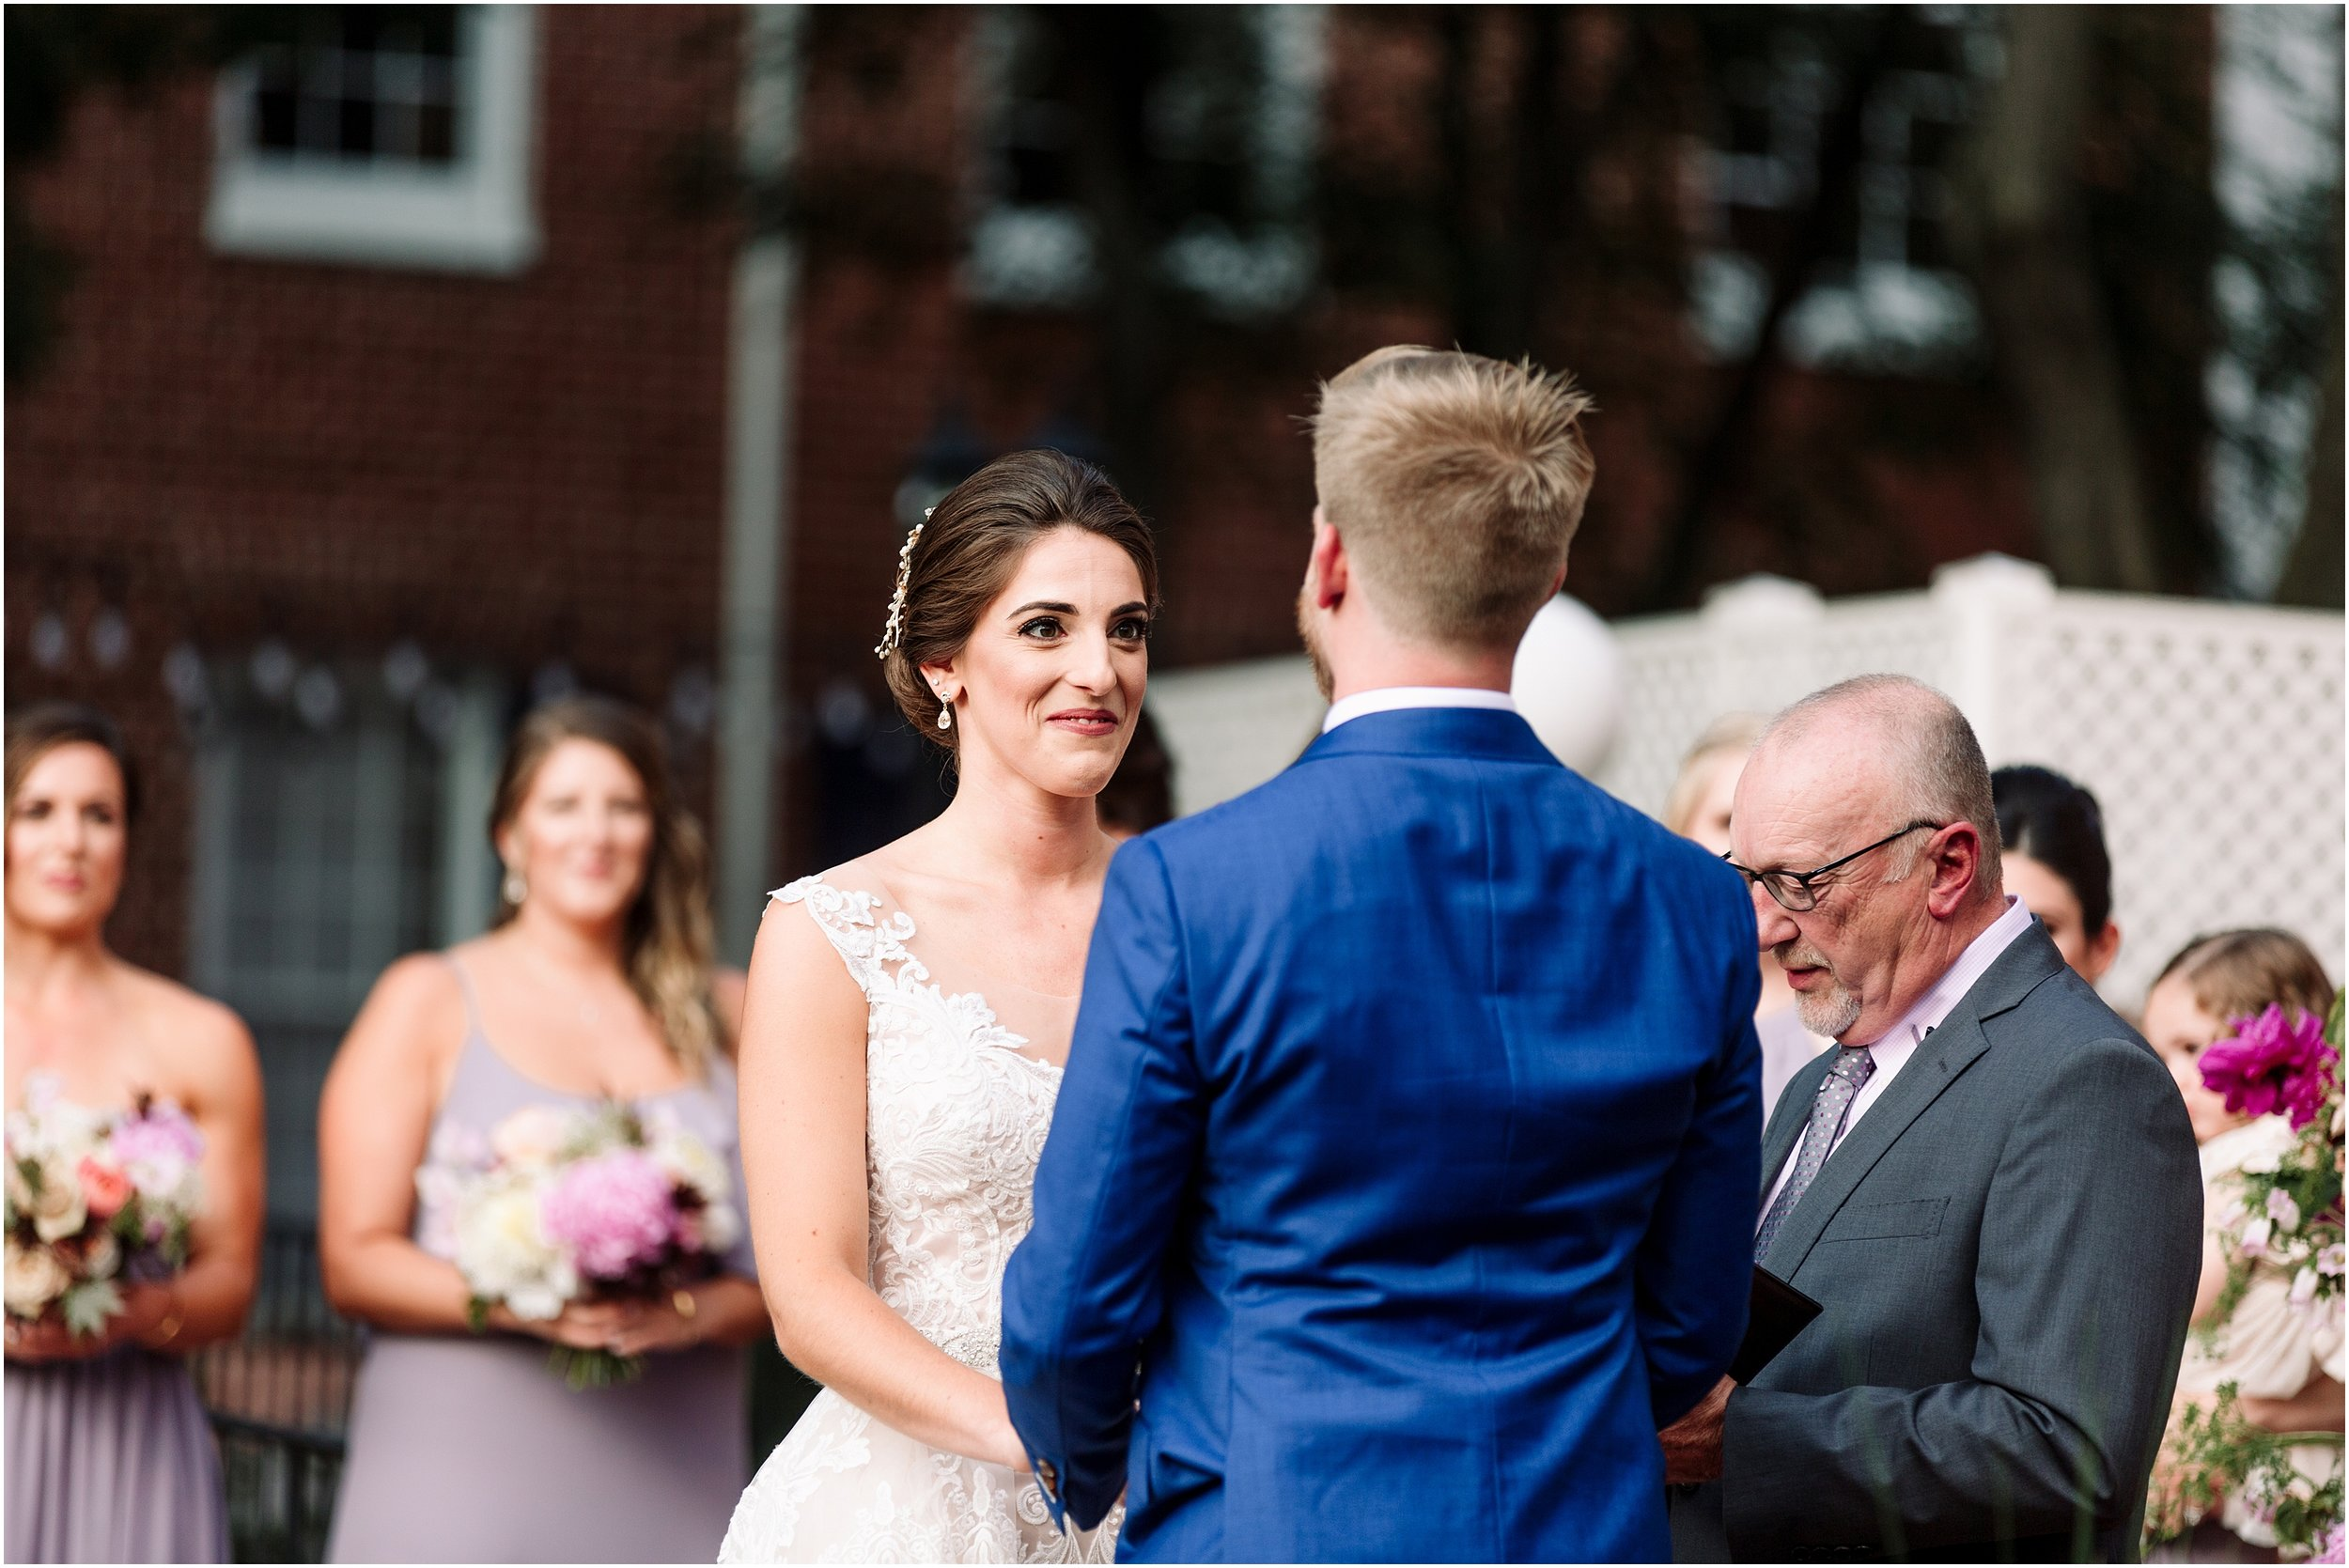 hannah leigh photography 1840s plaza wedding baltimore md_0064.jpg